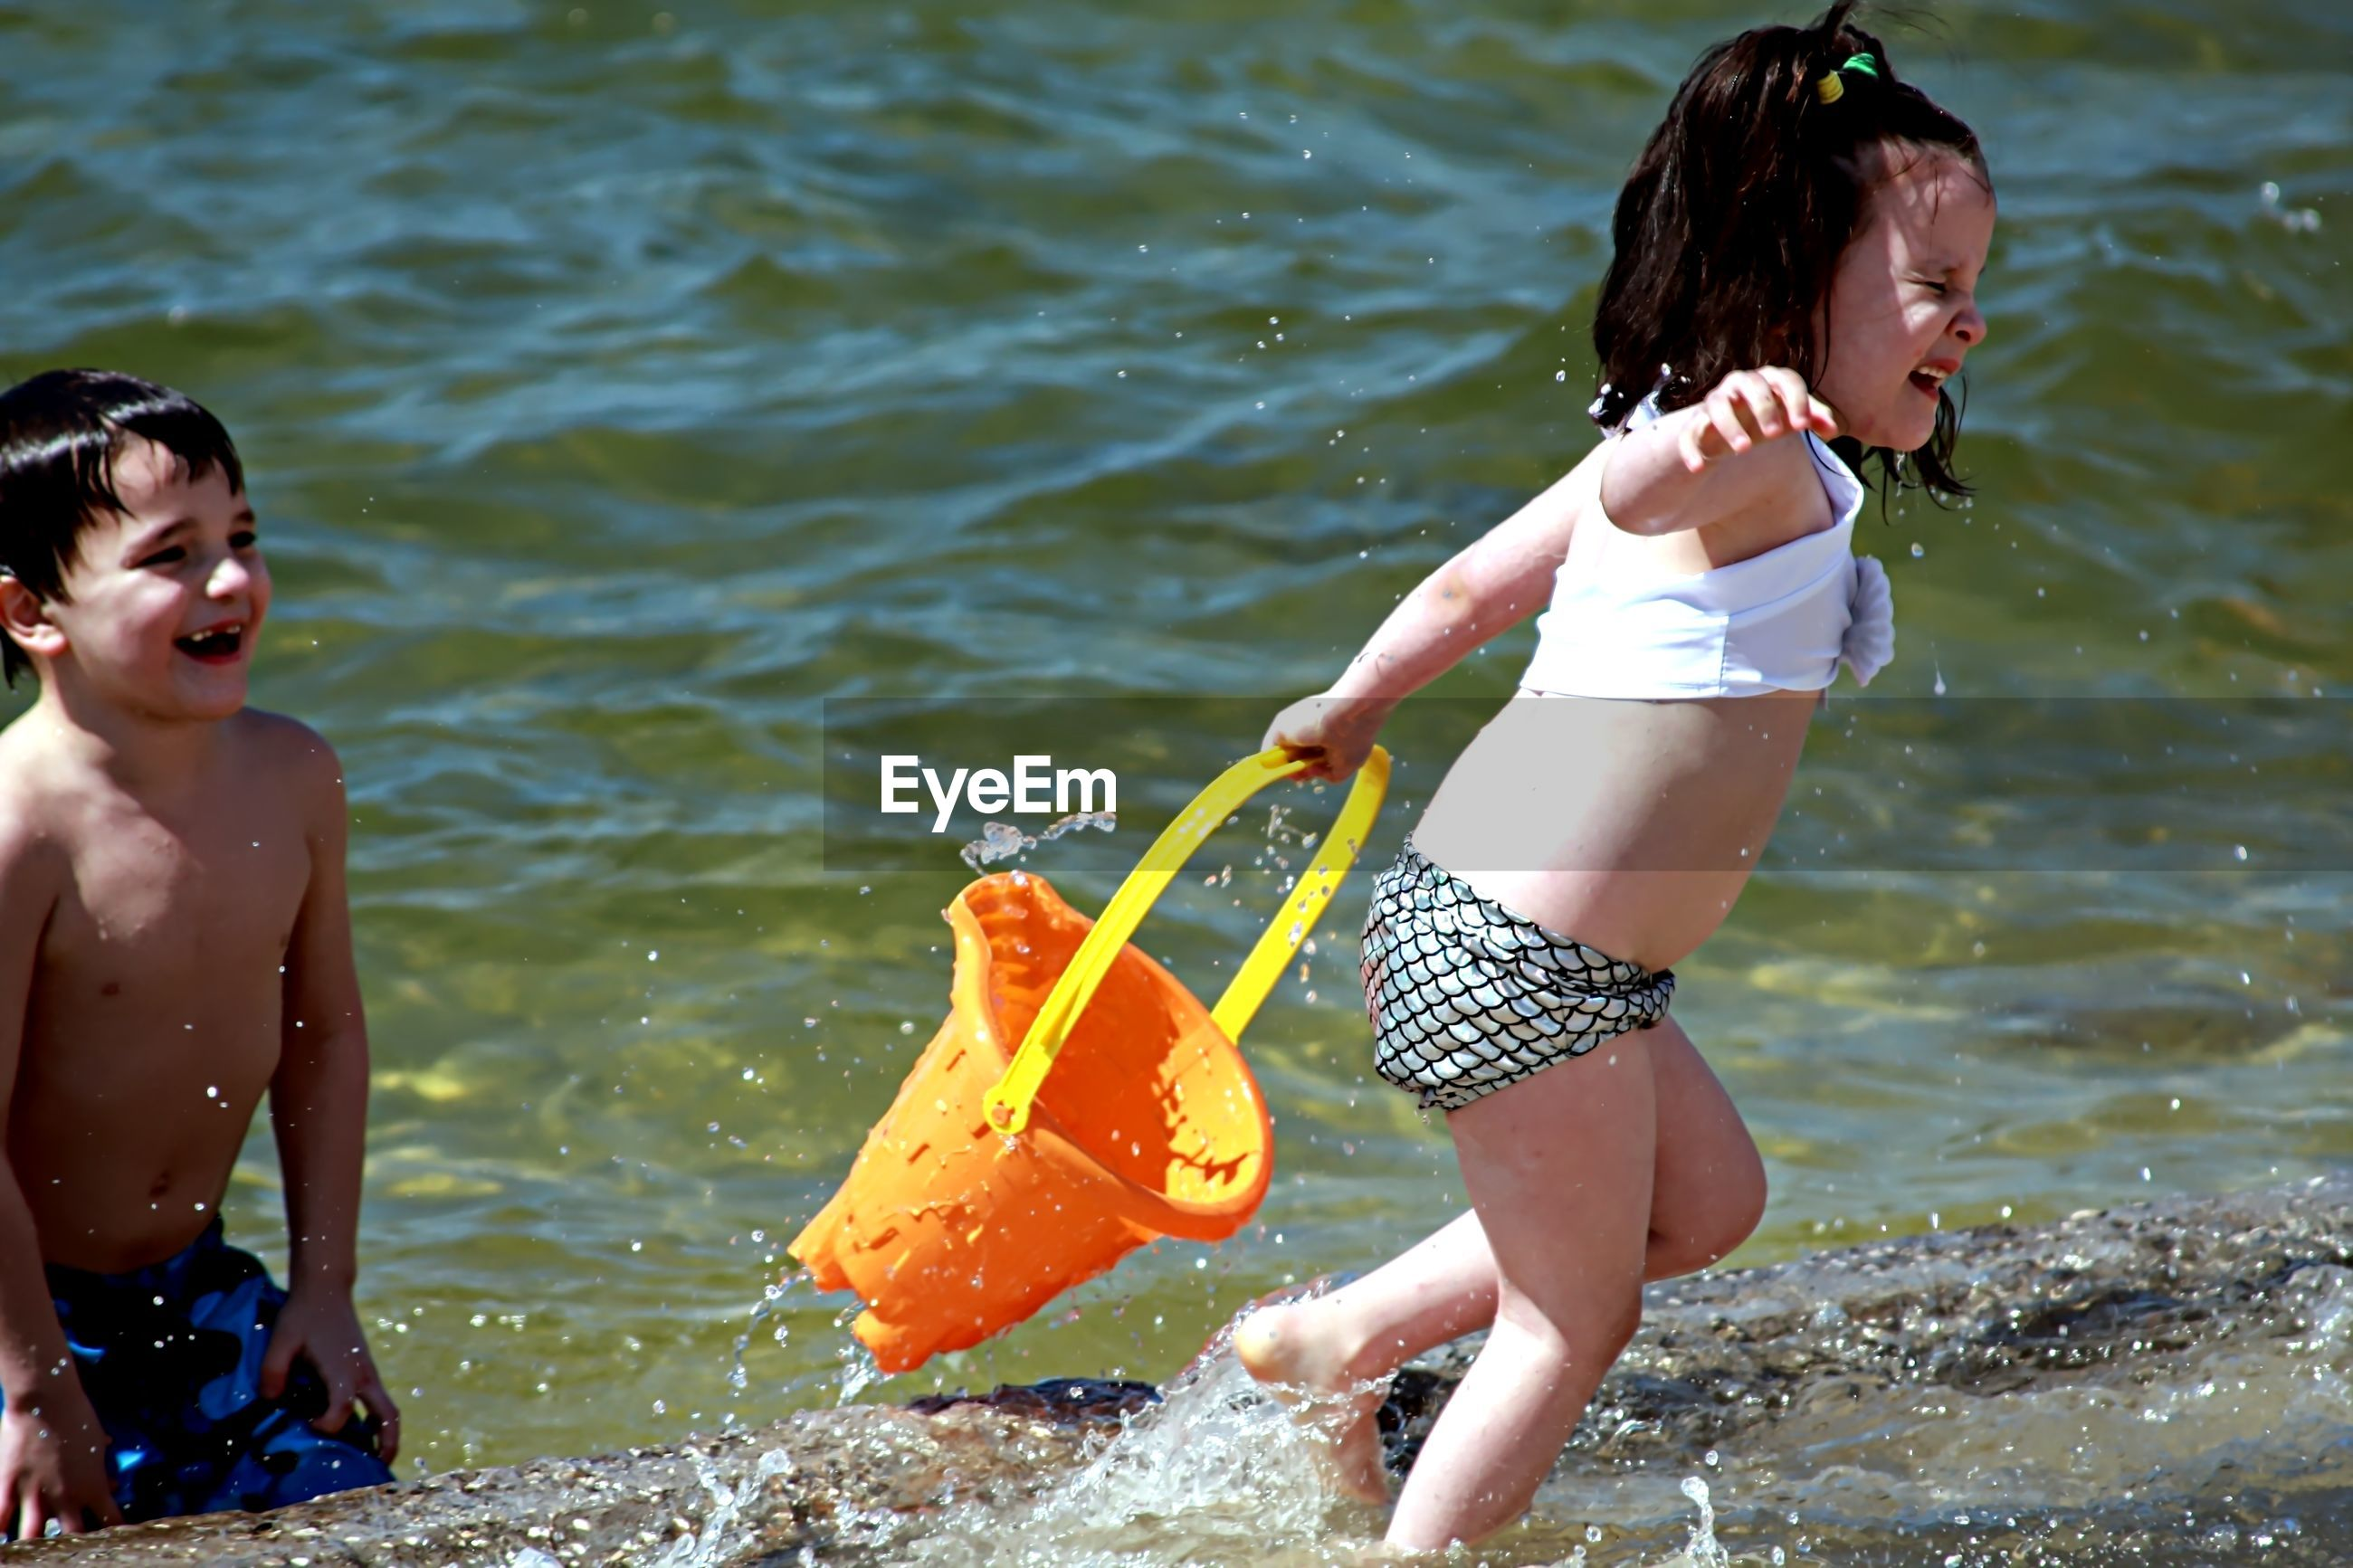 Boy and girl playing in the ocean with an orange bucket